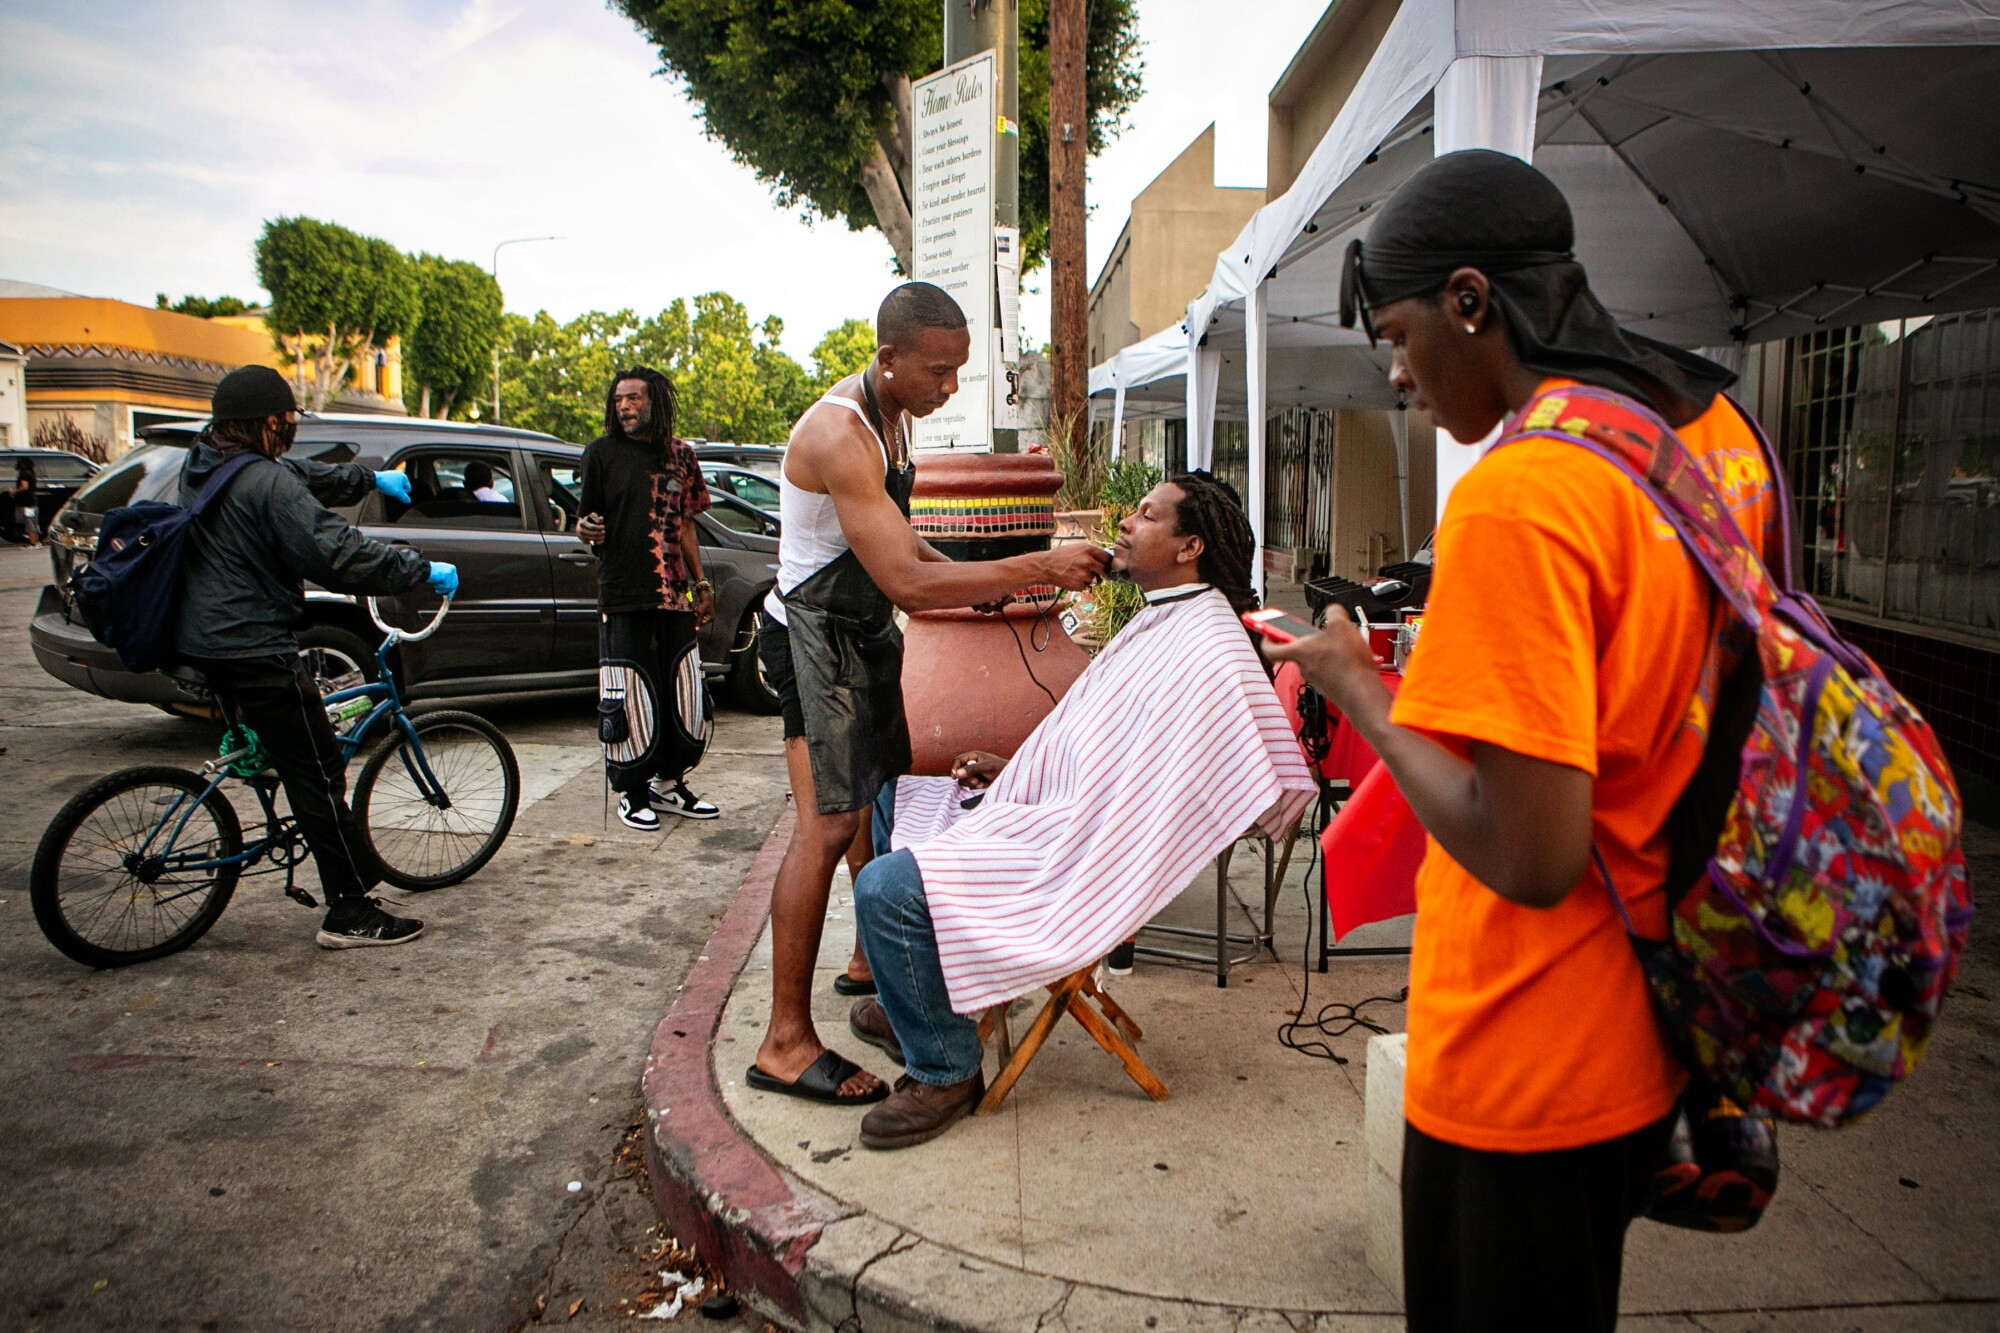 A man in a black apron gives a seated man a trim